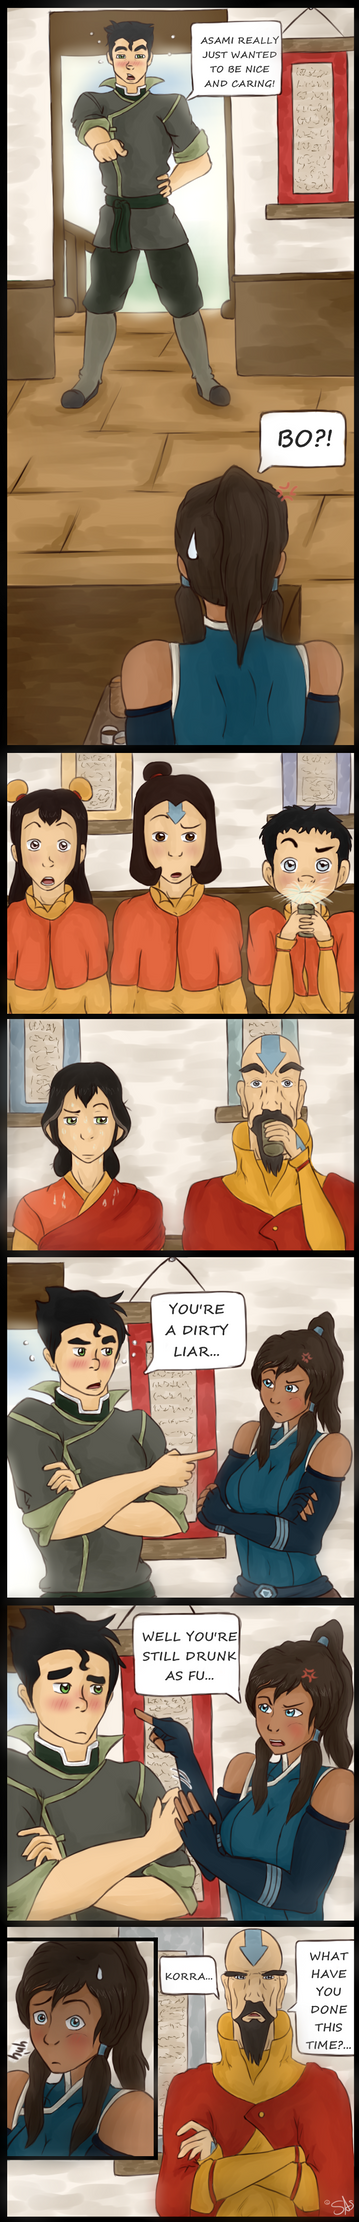 Korrasami part 12 by swiftwingOC95